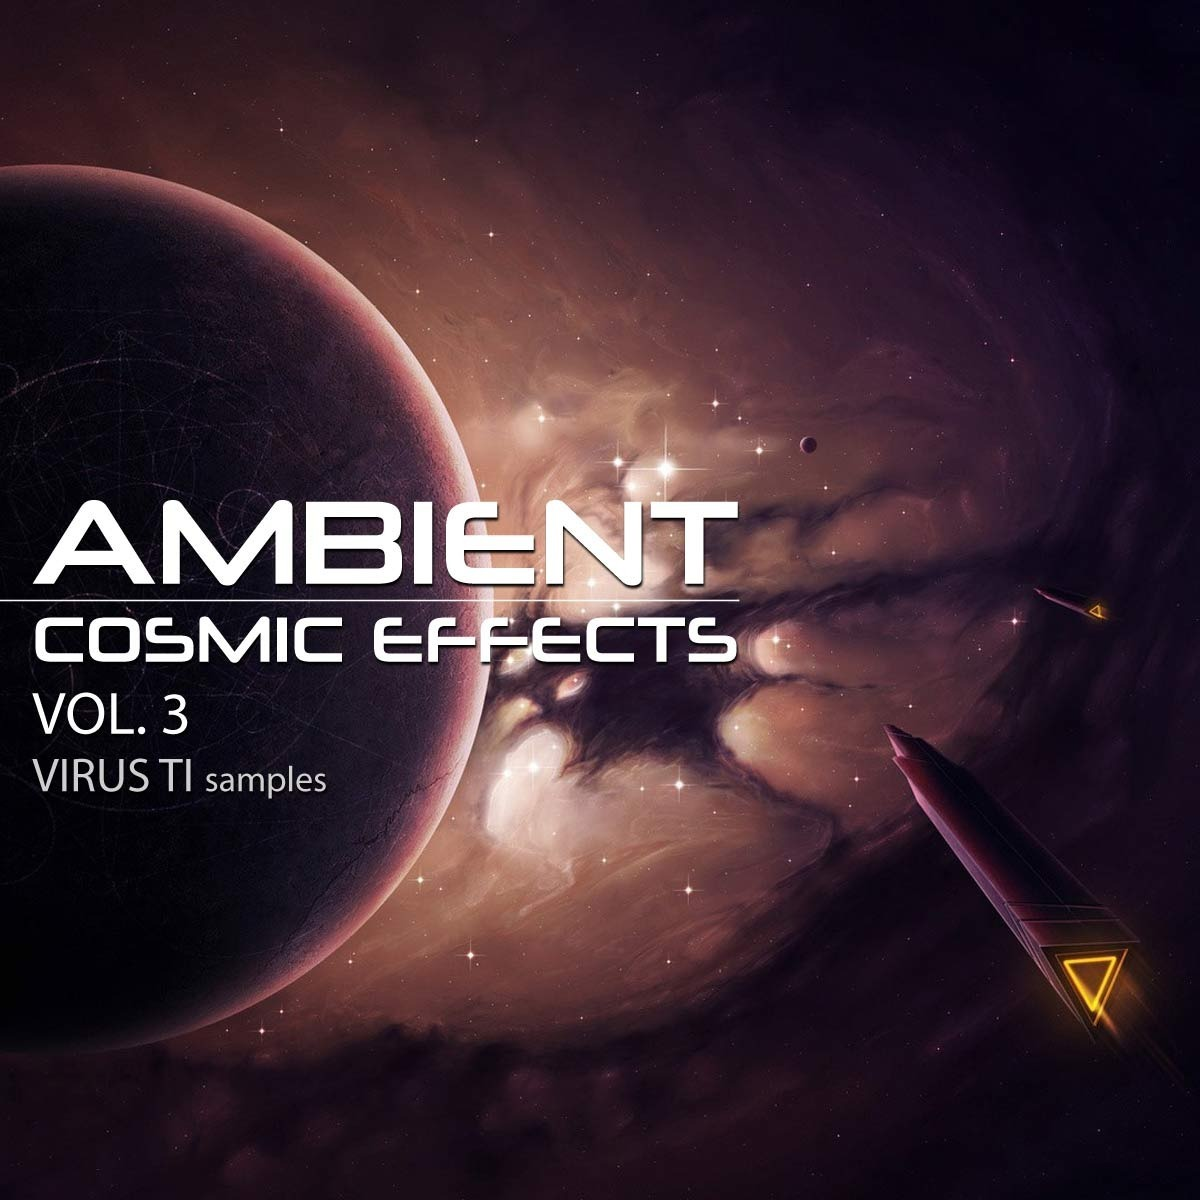 Ambient Cosmic Effects Vol 3